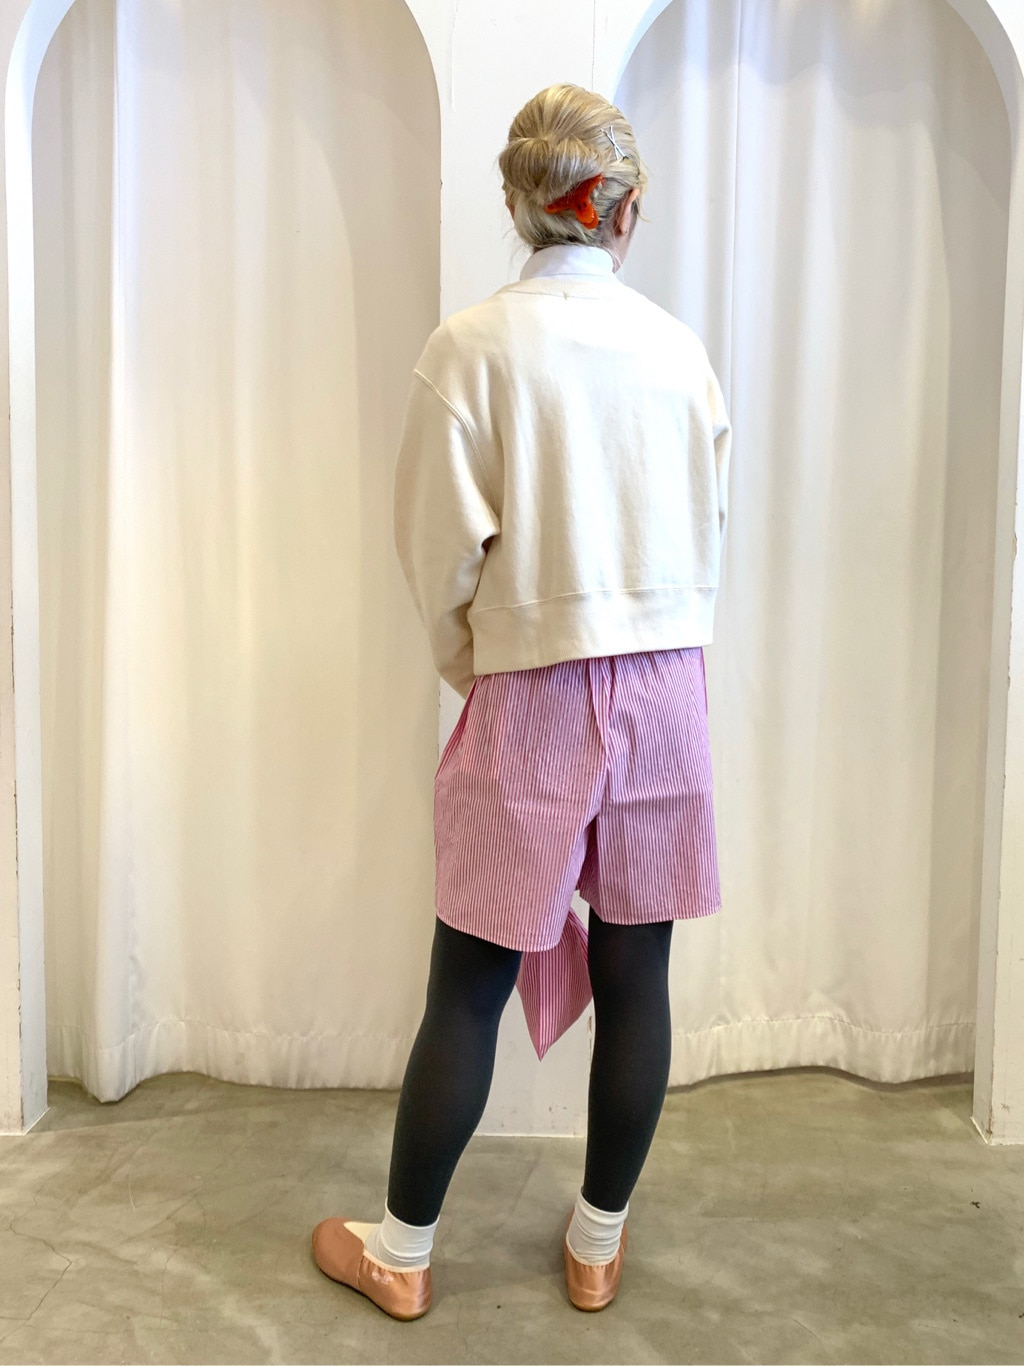 Dot and Stripes CHILD WOMAN ラフォーレ原宿 身長:160cm 2021.01.12